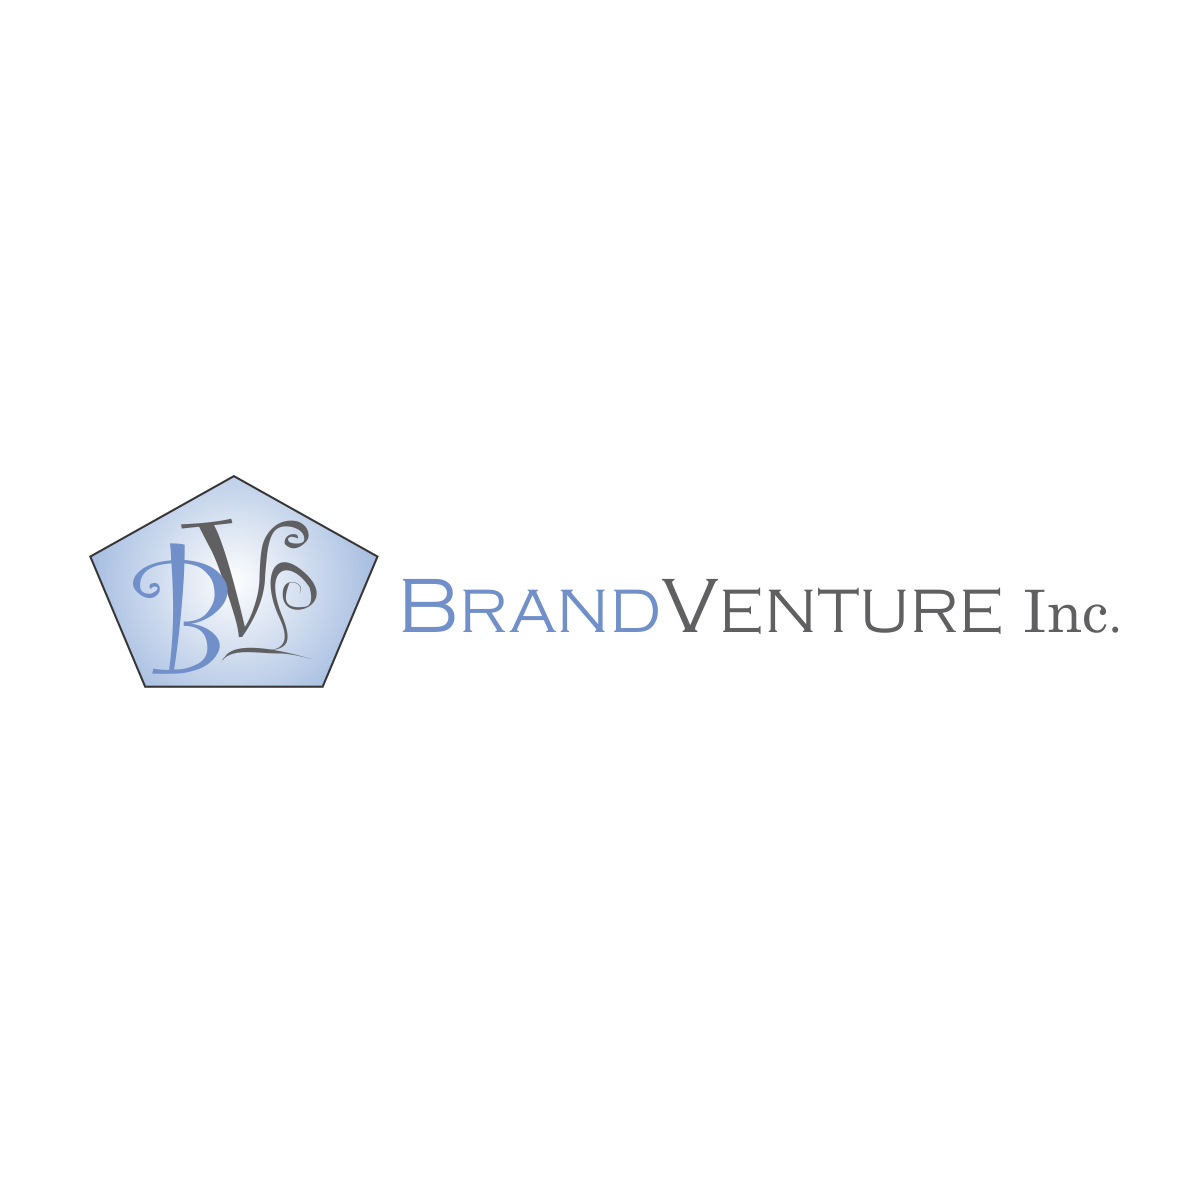 Logo Design by robbiemack - Entry No. 8 in the Logo Design Contest BRANDVENTURE Inc..